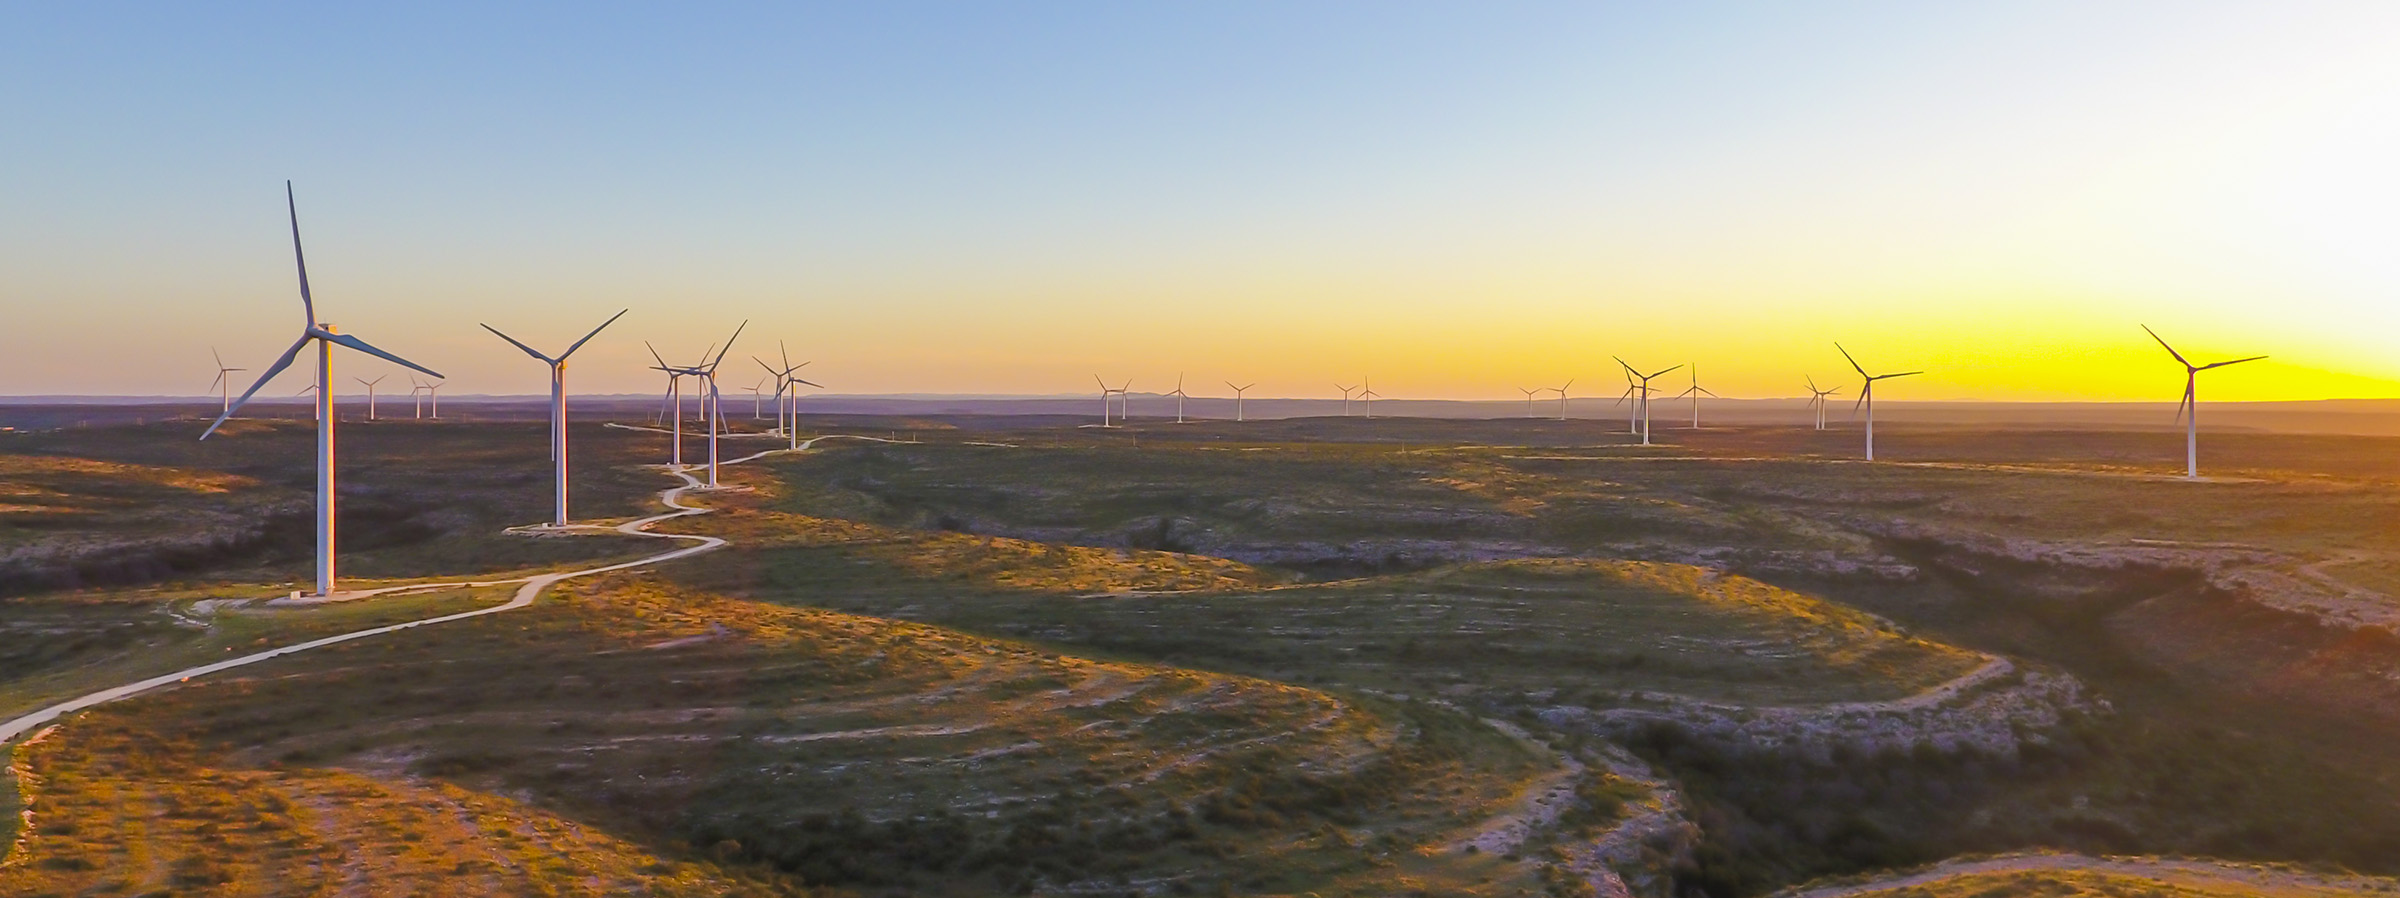 Wind farm Sherbino 2 during sunset in West Texas that were captured by drone photo by Marc Morrison.